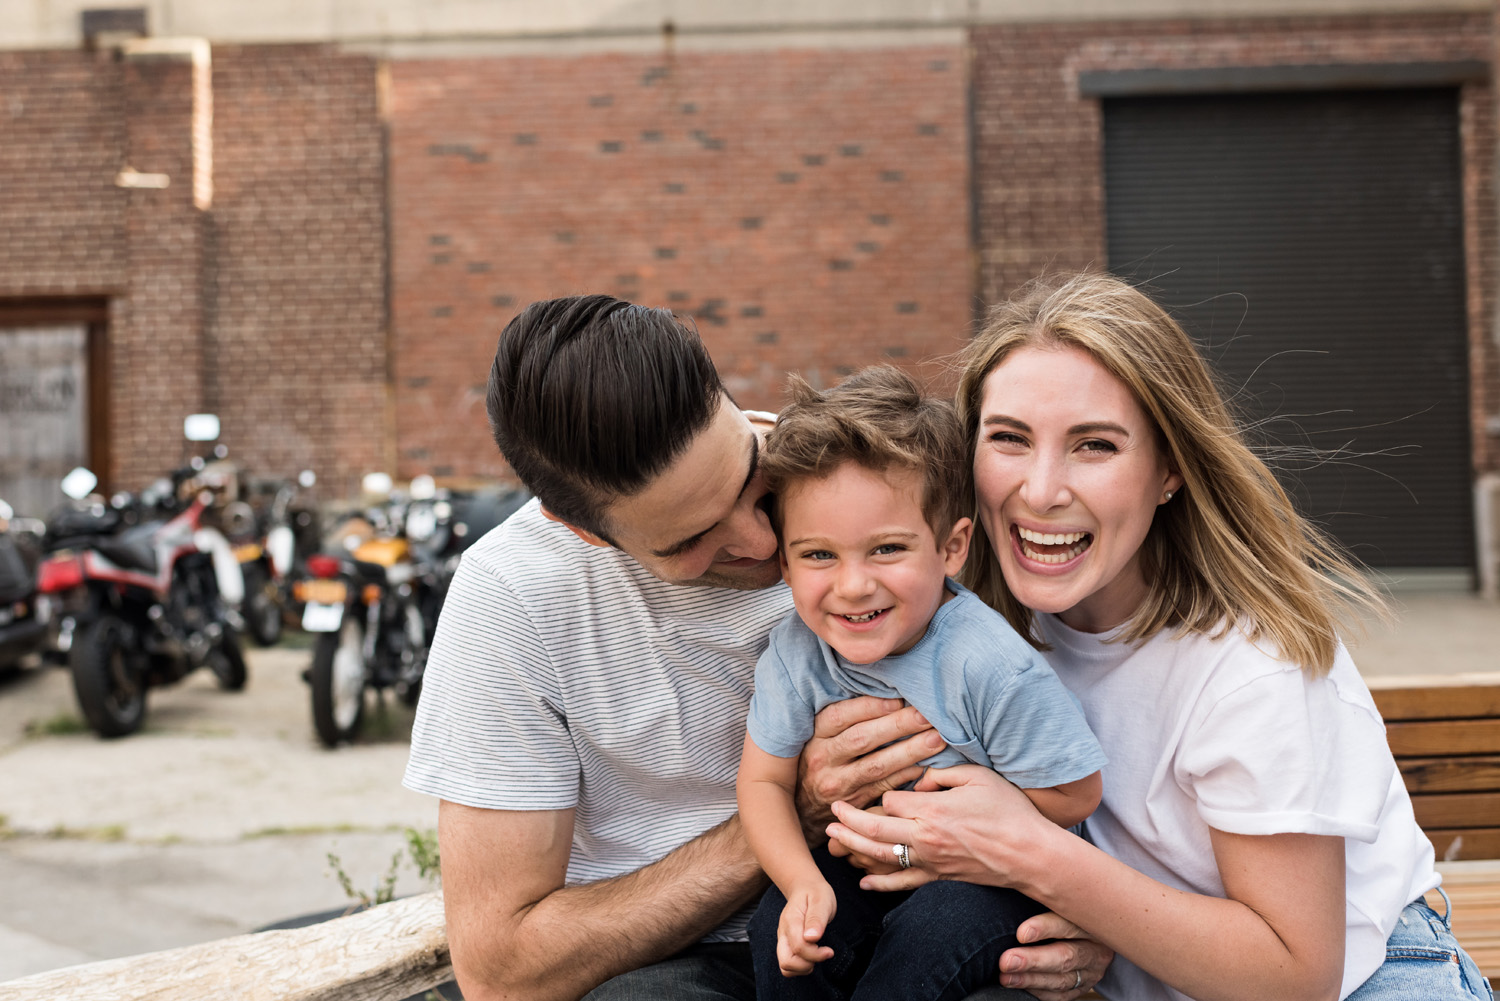 Red Hook Brooklyn Family Photographer_20190811_058.jpg